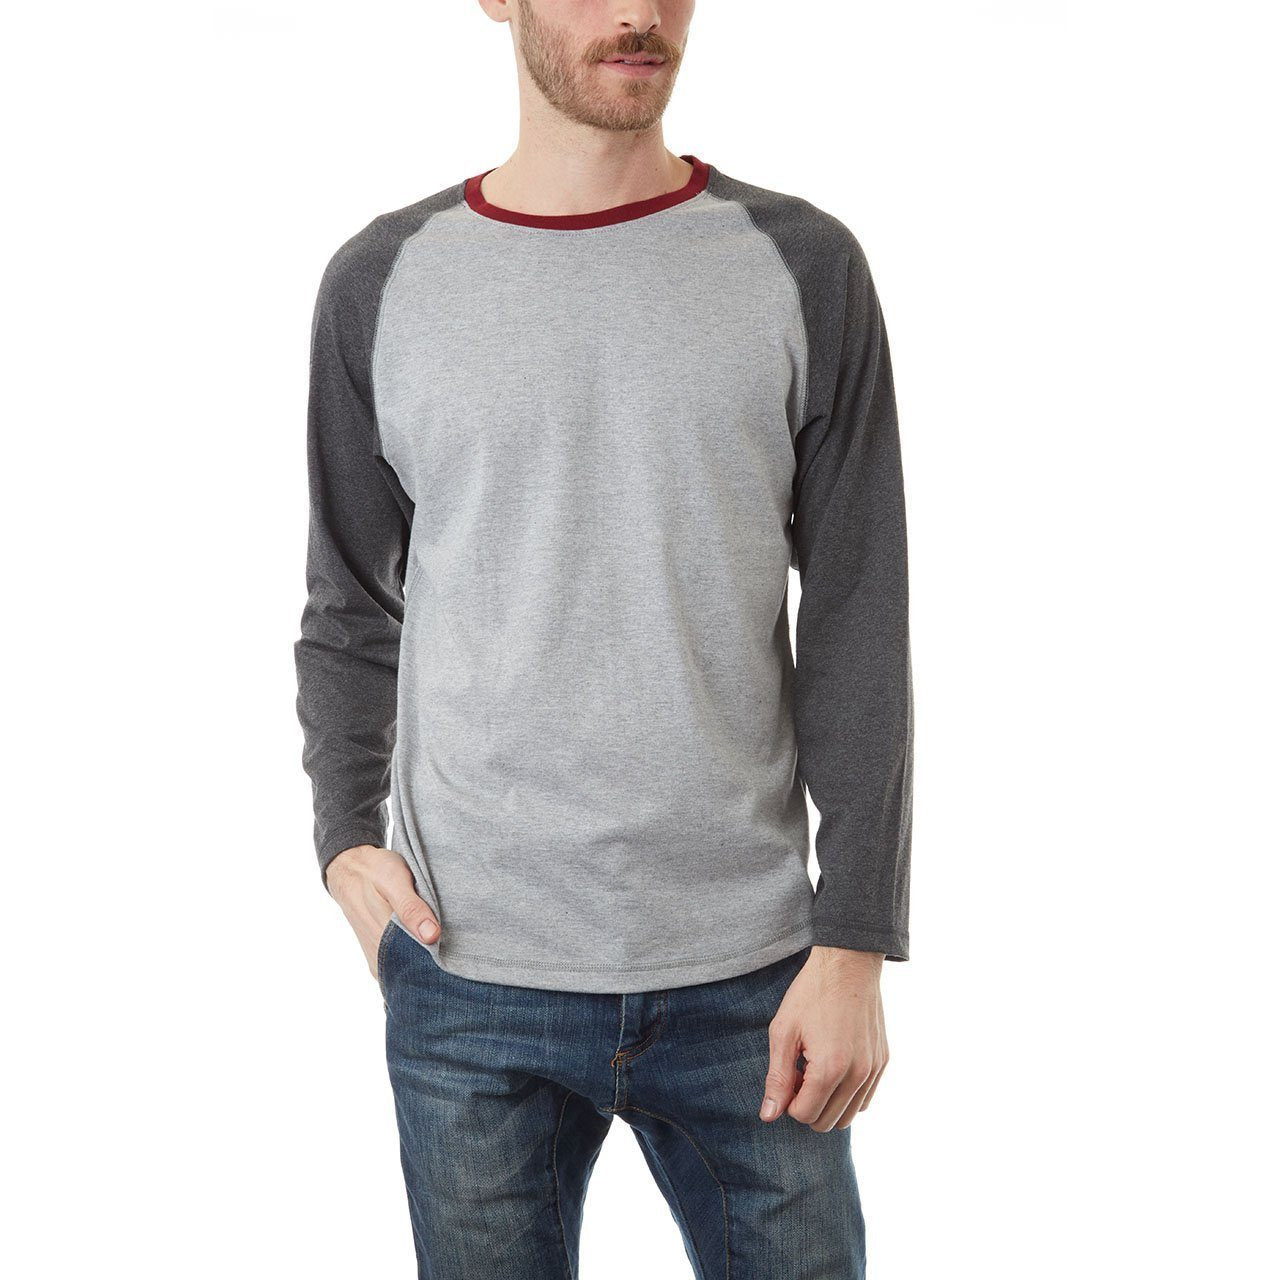 mens clothing store shirts tops grey long sleeve clothes lord owens